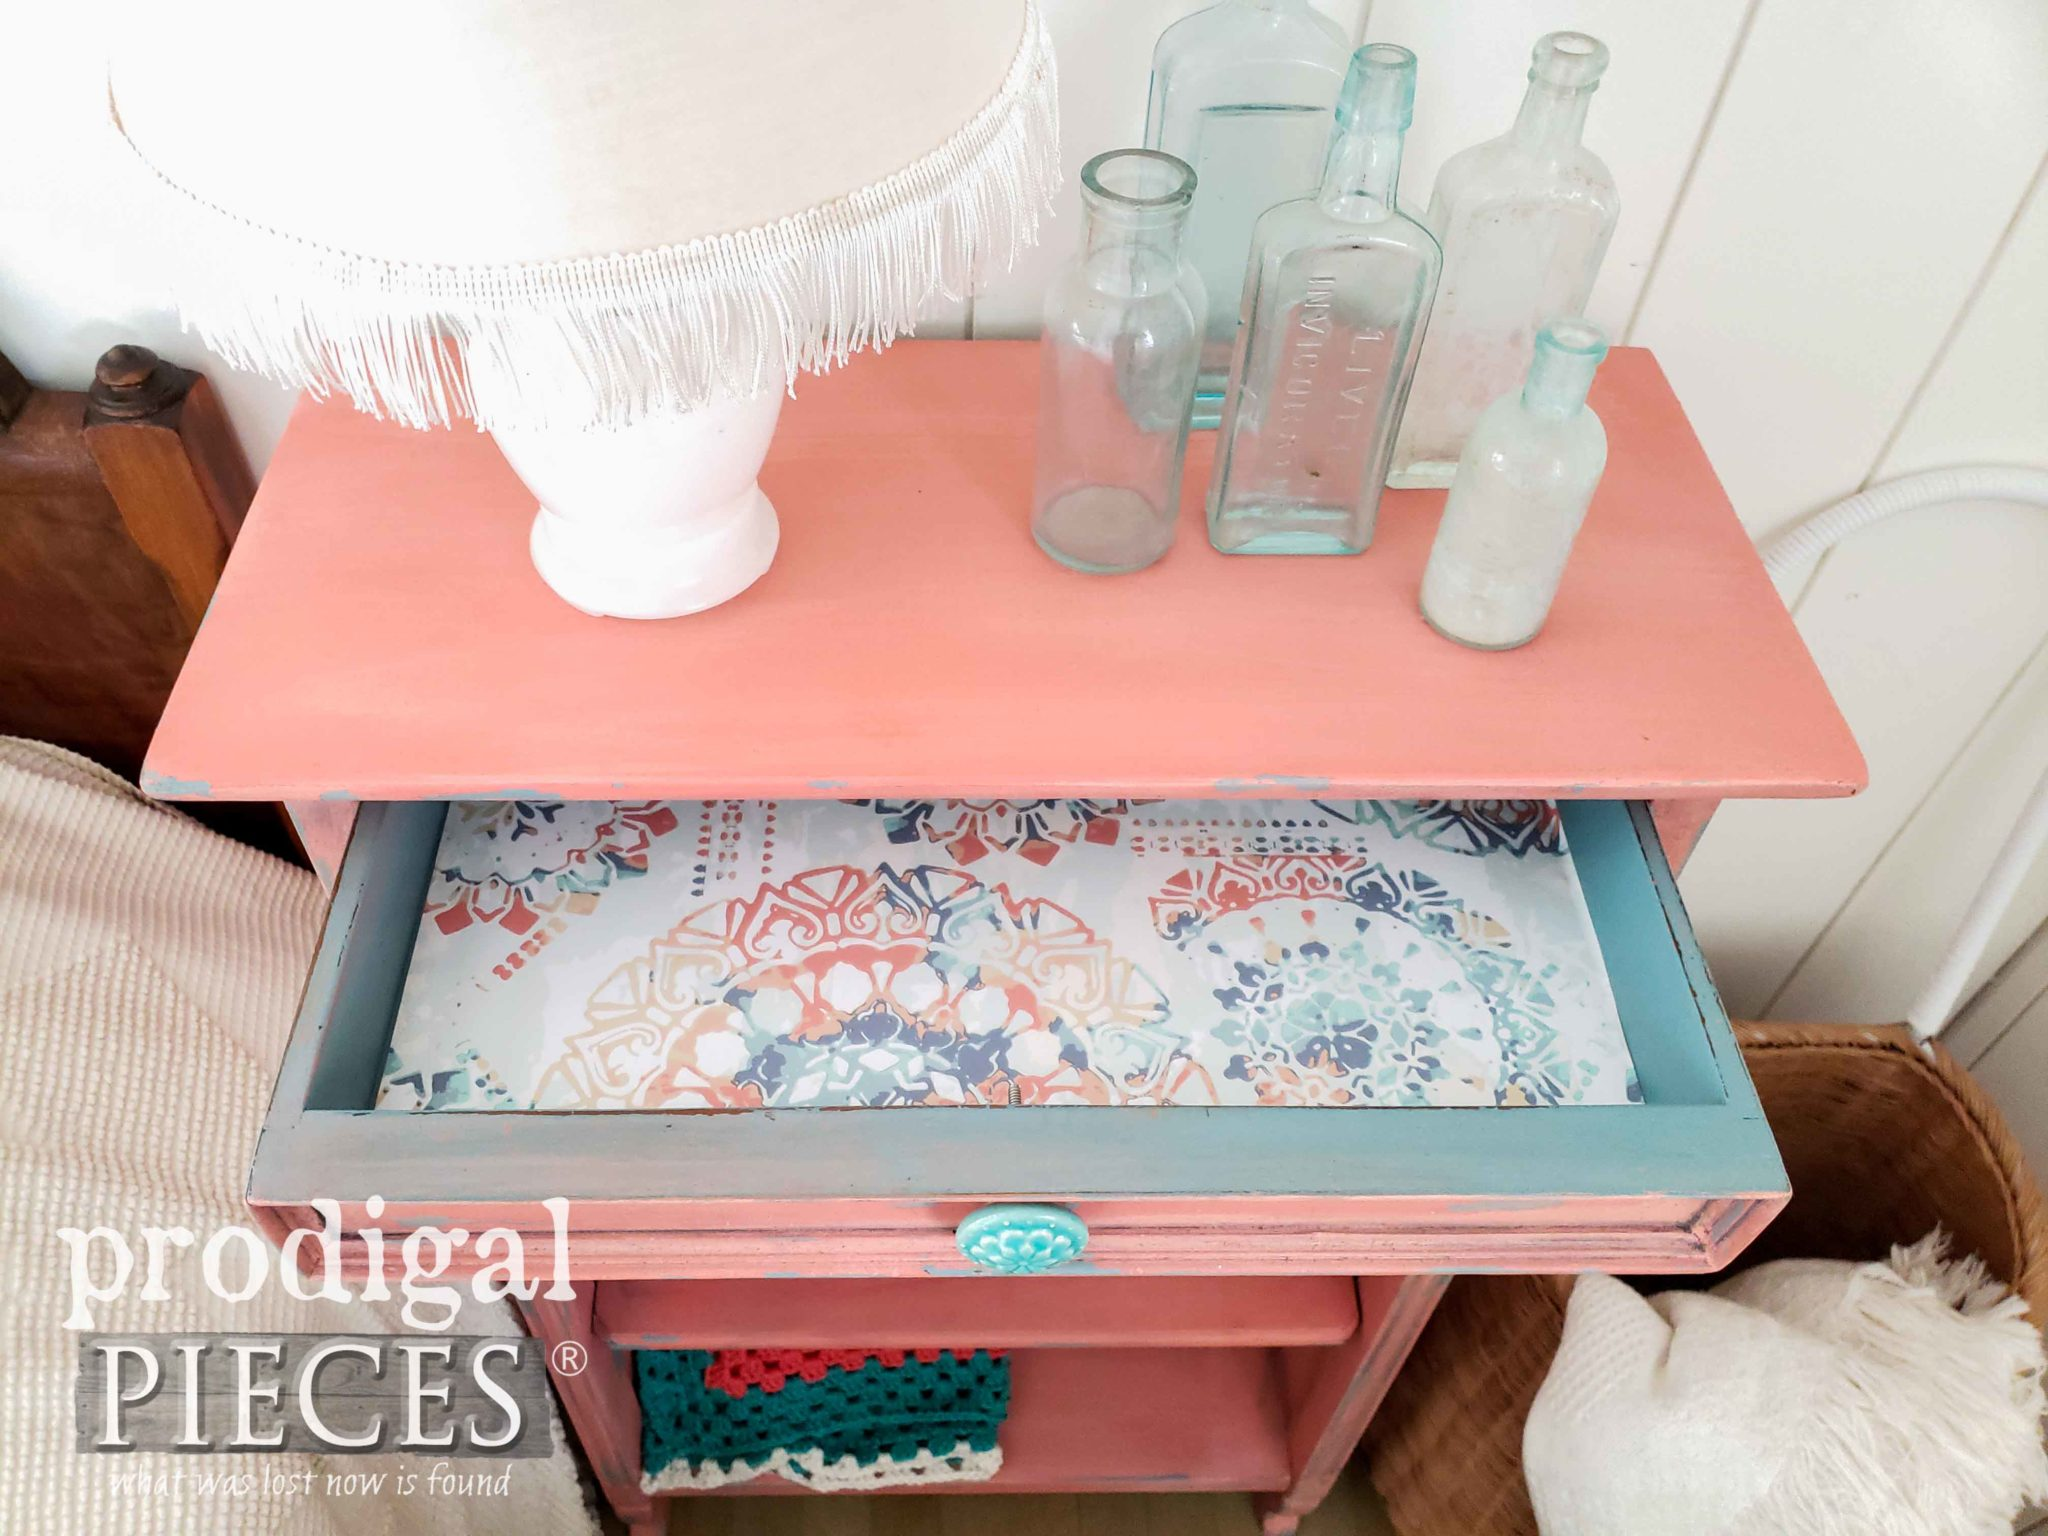 Paper Lined Drawer of Vintage Coral Bookcase for Boho Style by Larissa of Prodigal Pieces | prodigalpieces.com